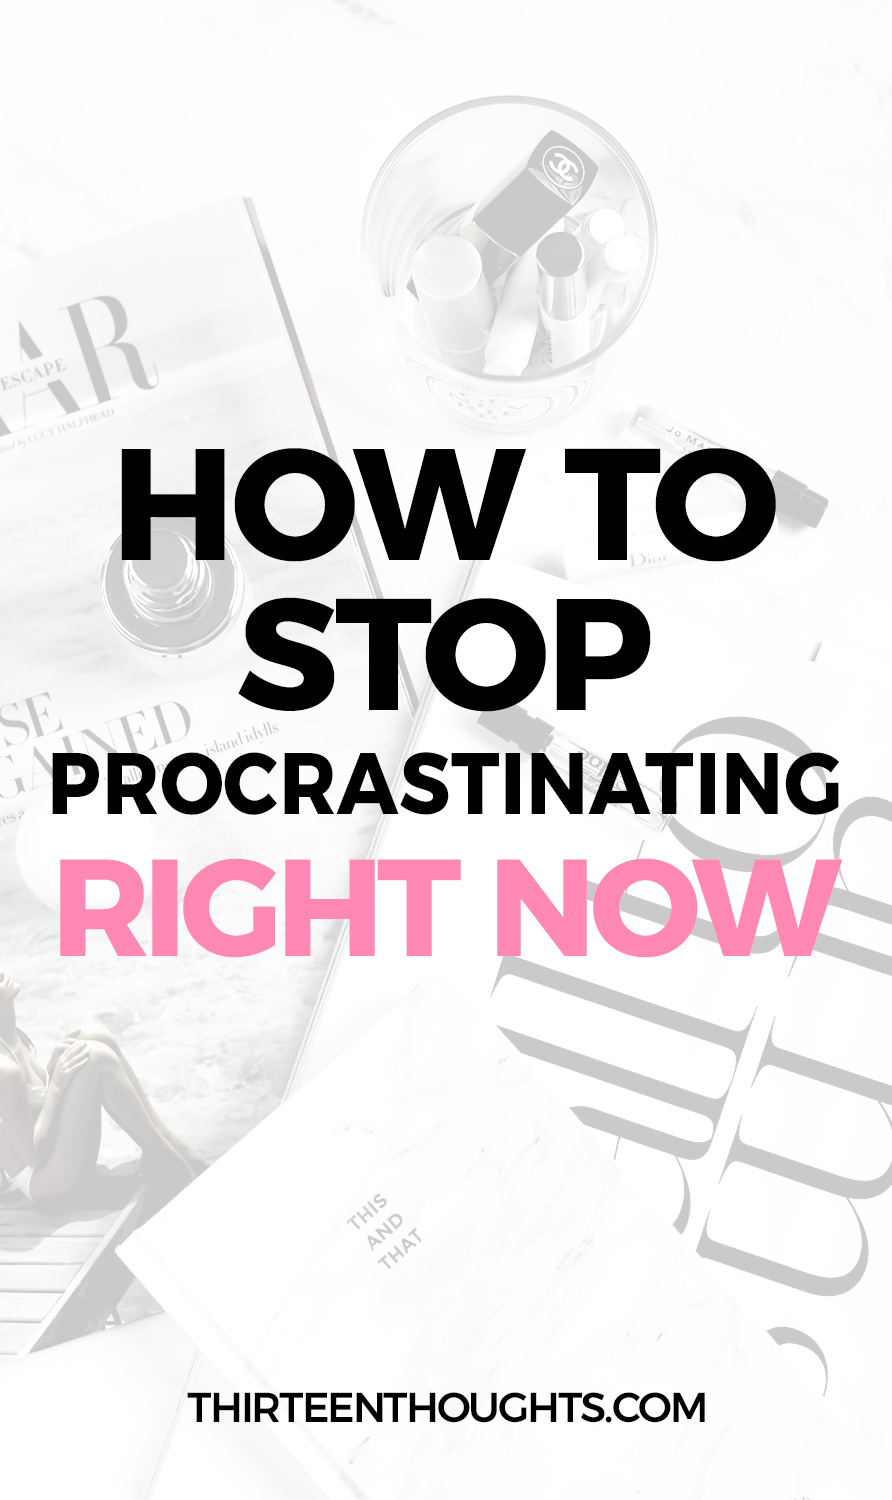 How-to-stop-procrastinating-right-now